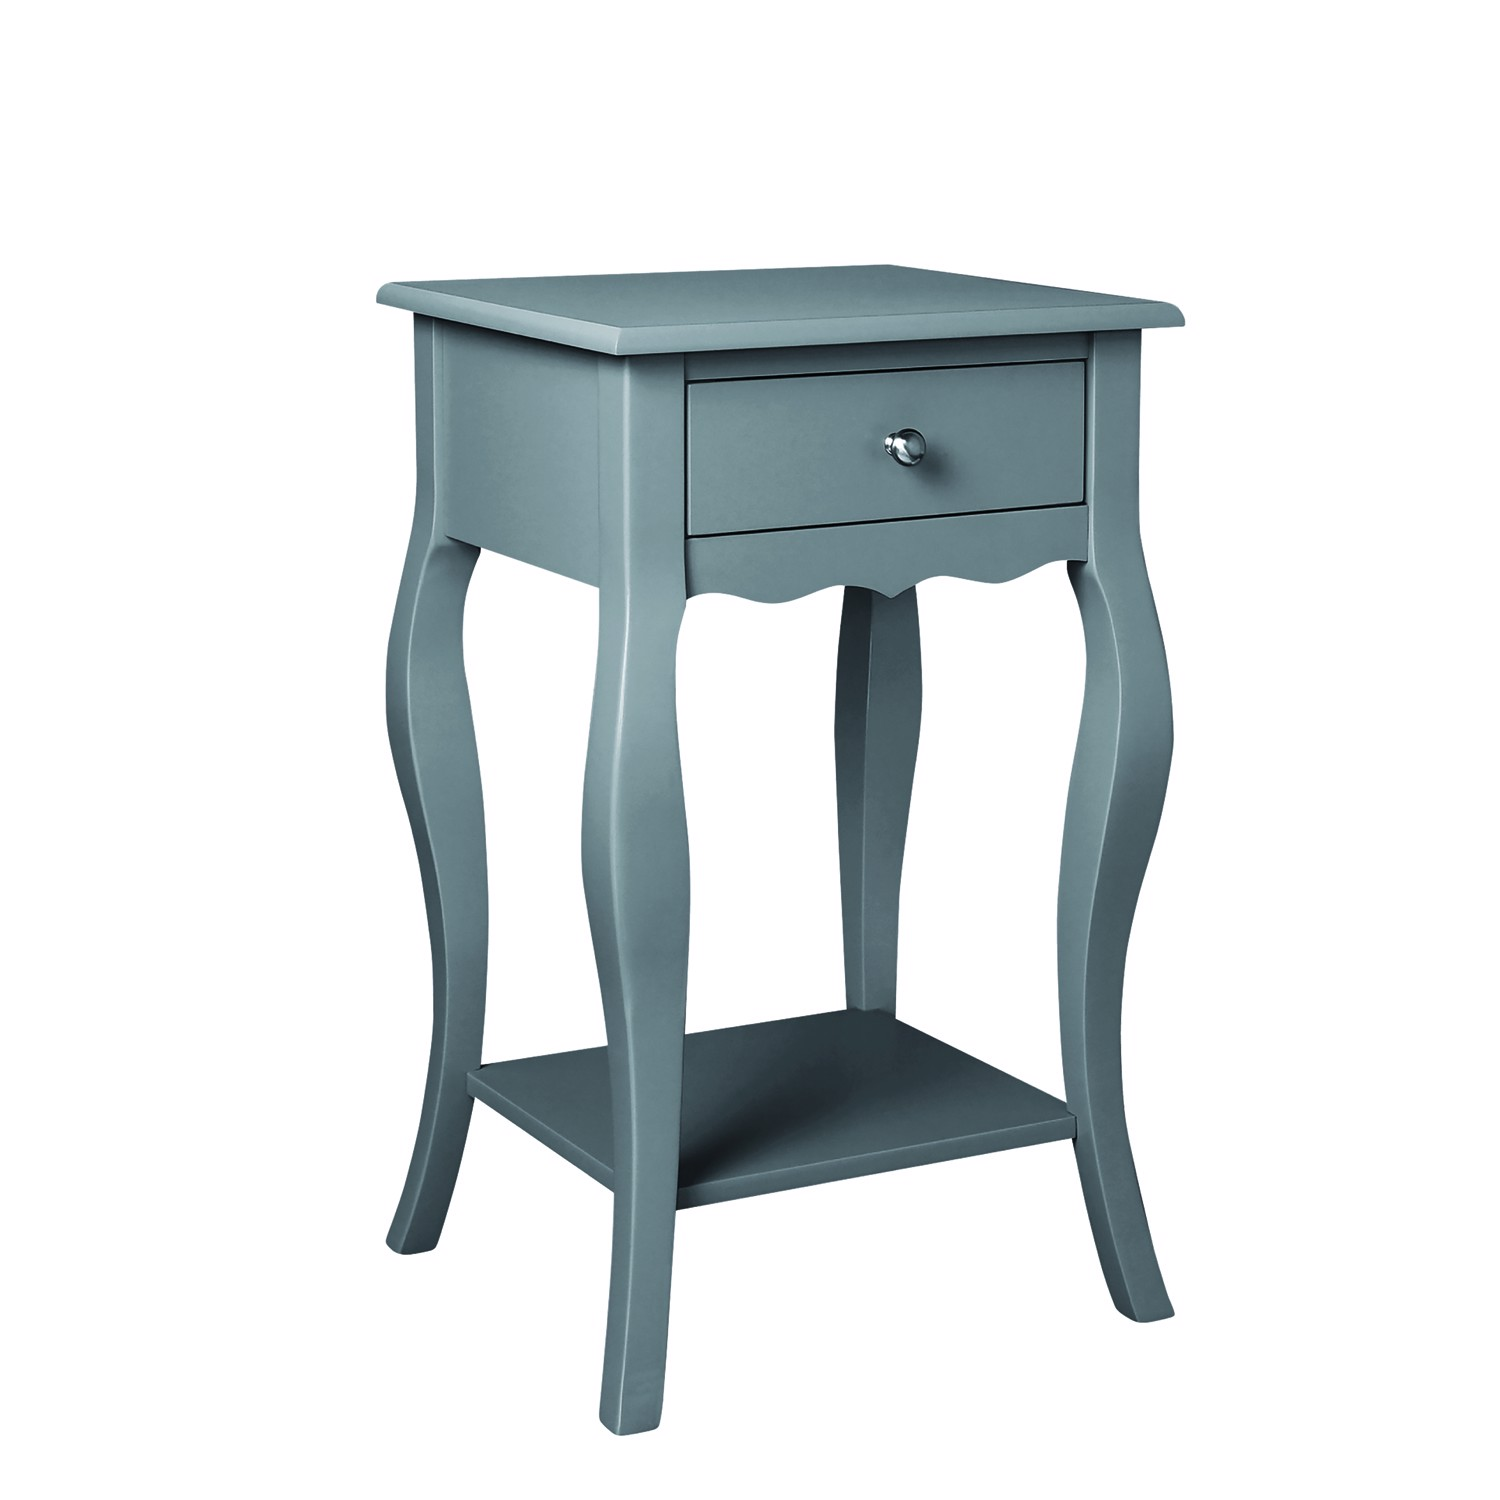 Accent Table<br/>IDT4125GRA